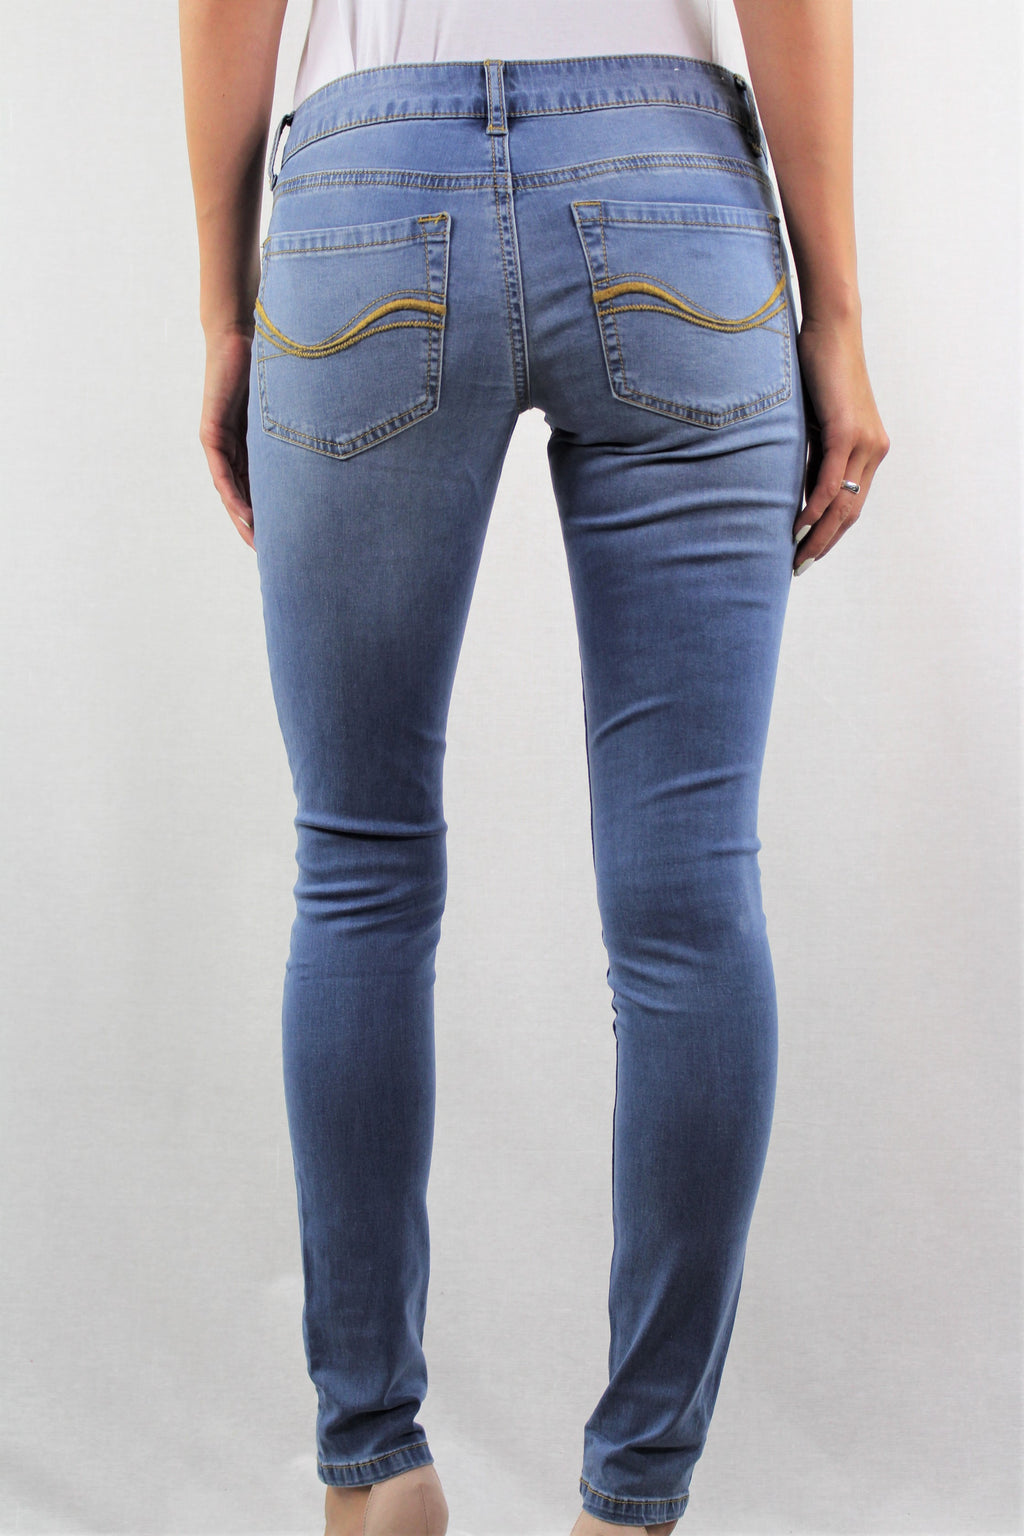 Women's Light Blue Skinny Jeans